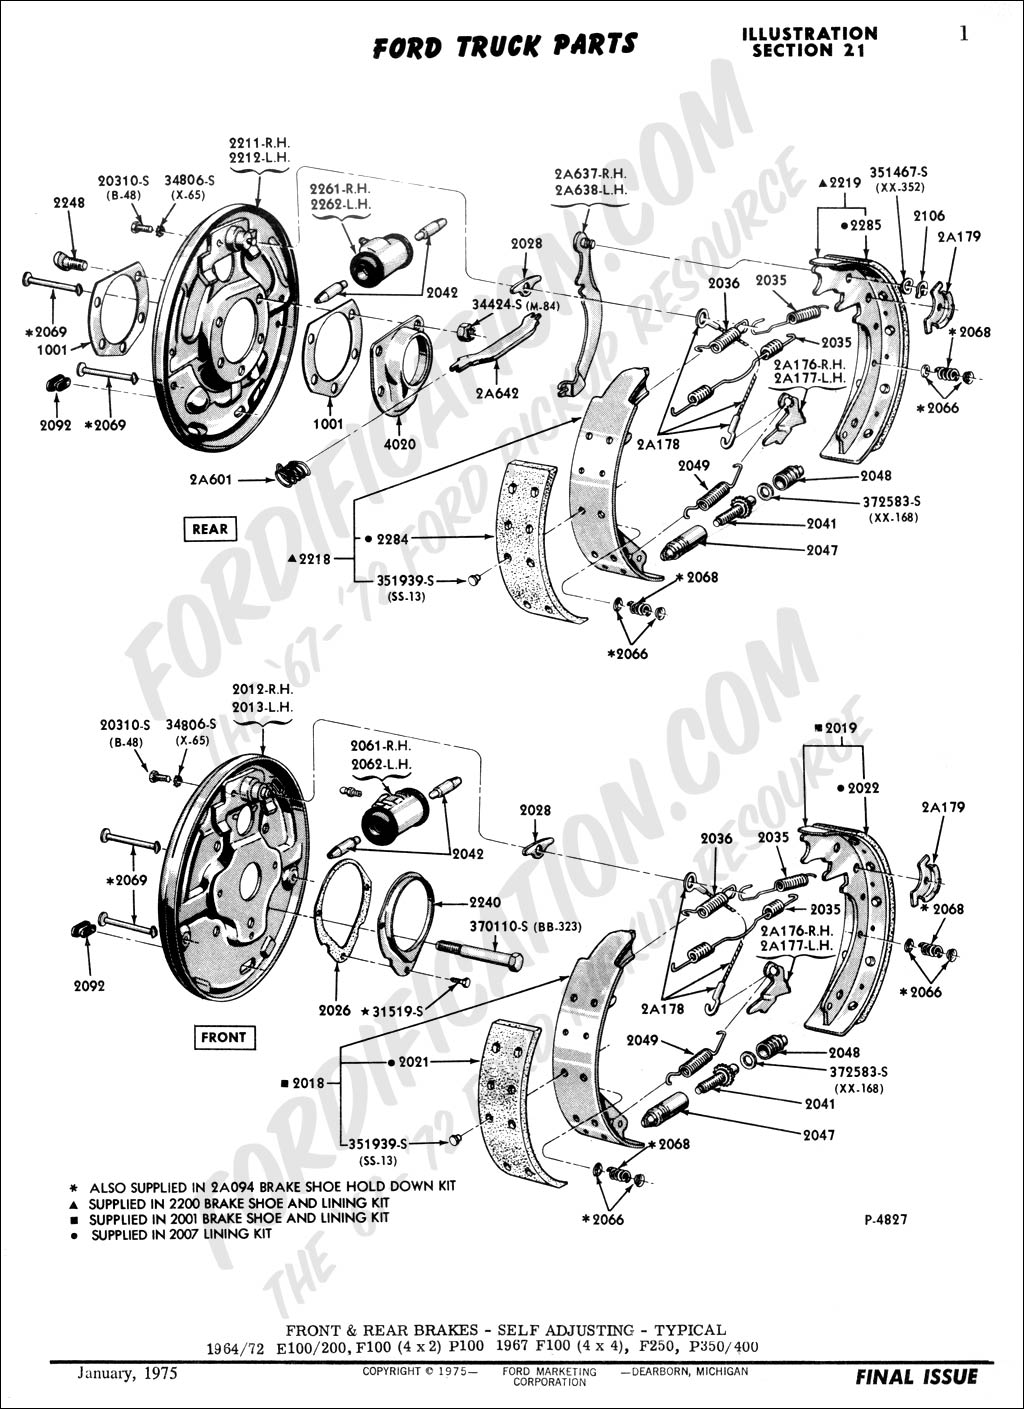 Ford Truck Technical Drawings and Schematics - Section B - Brake Systems  and Related Components